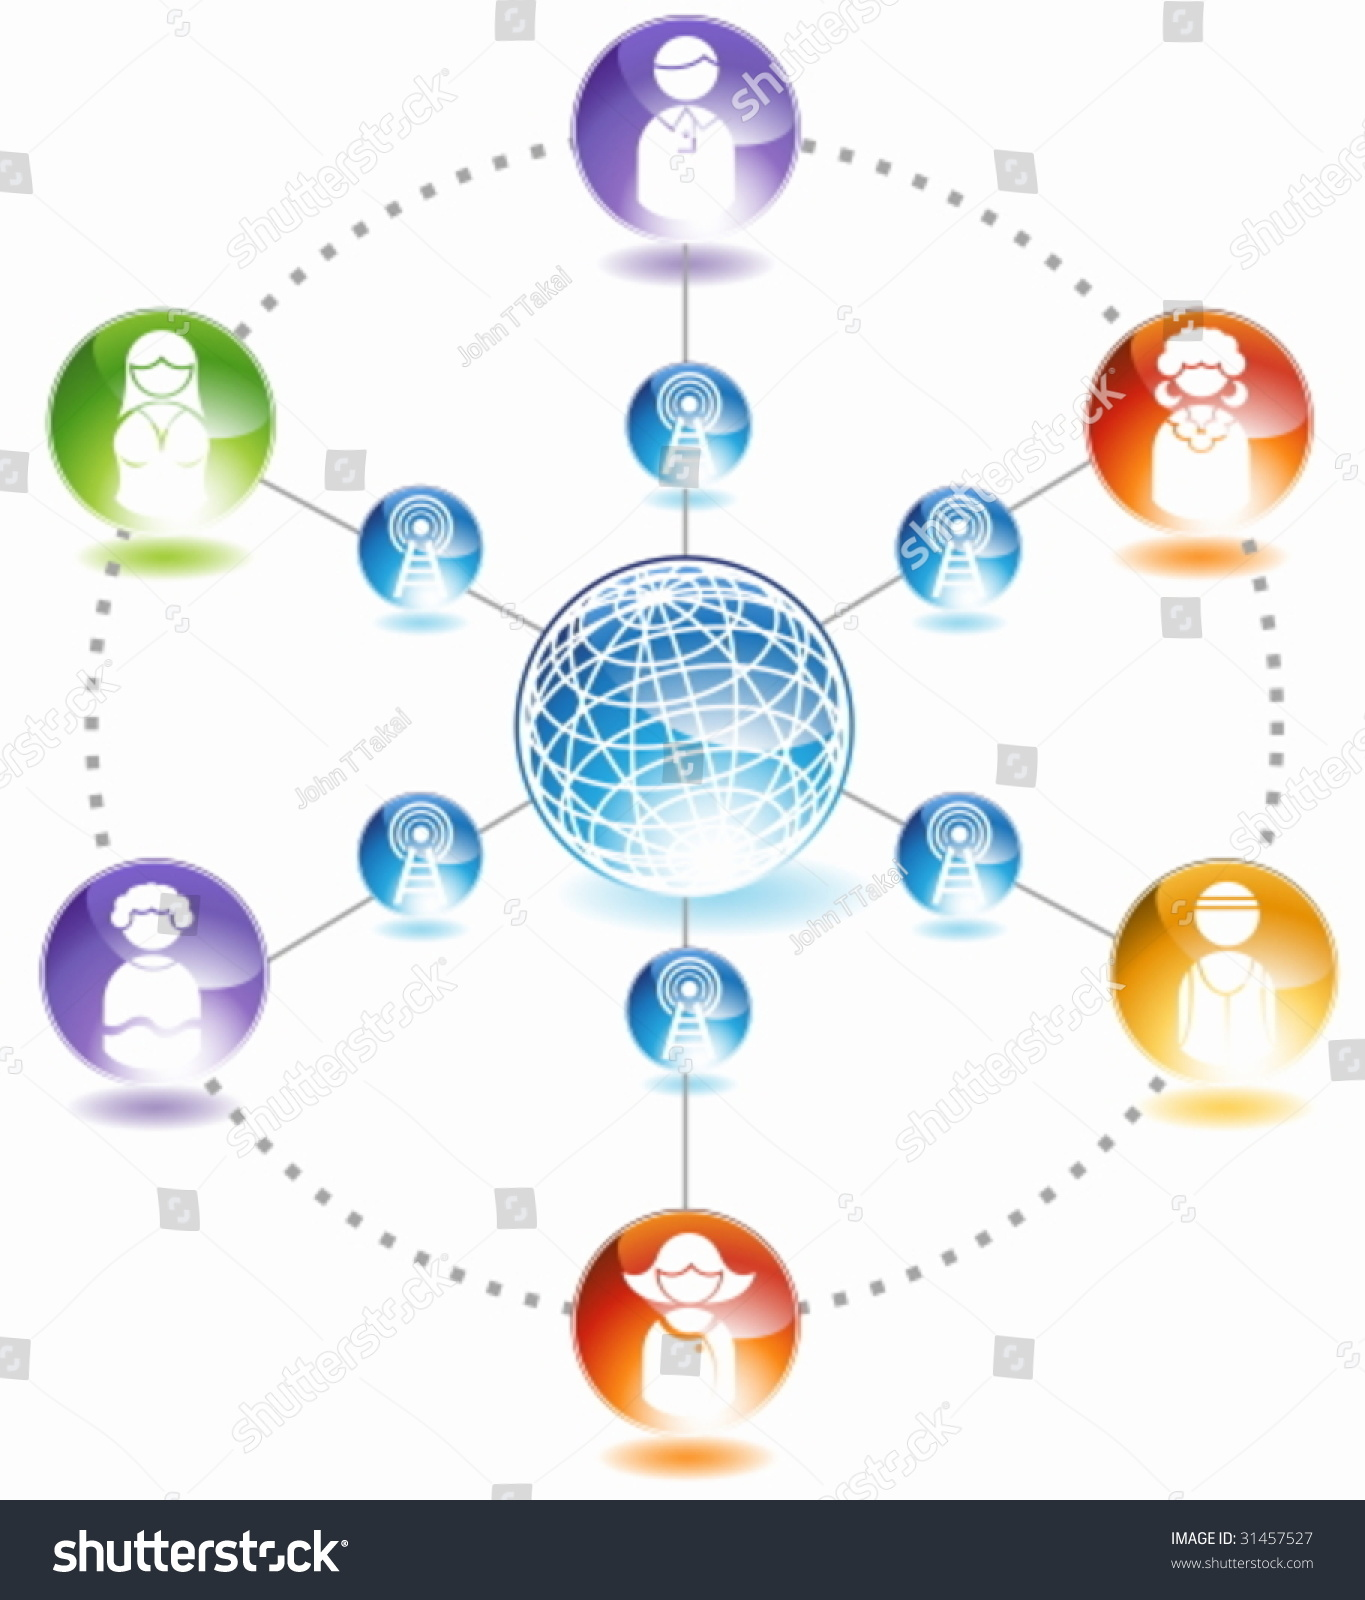 social network diagram   chart representing a network of people    social network diagram   chart representing a network of people communicating with each other  stock vector illustration     shutterstock